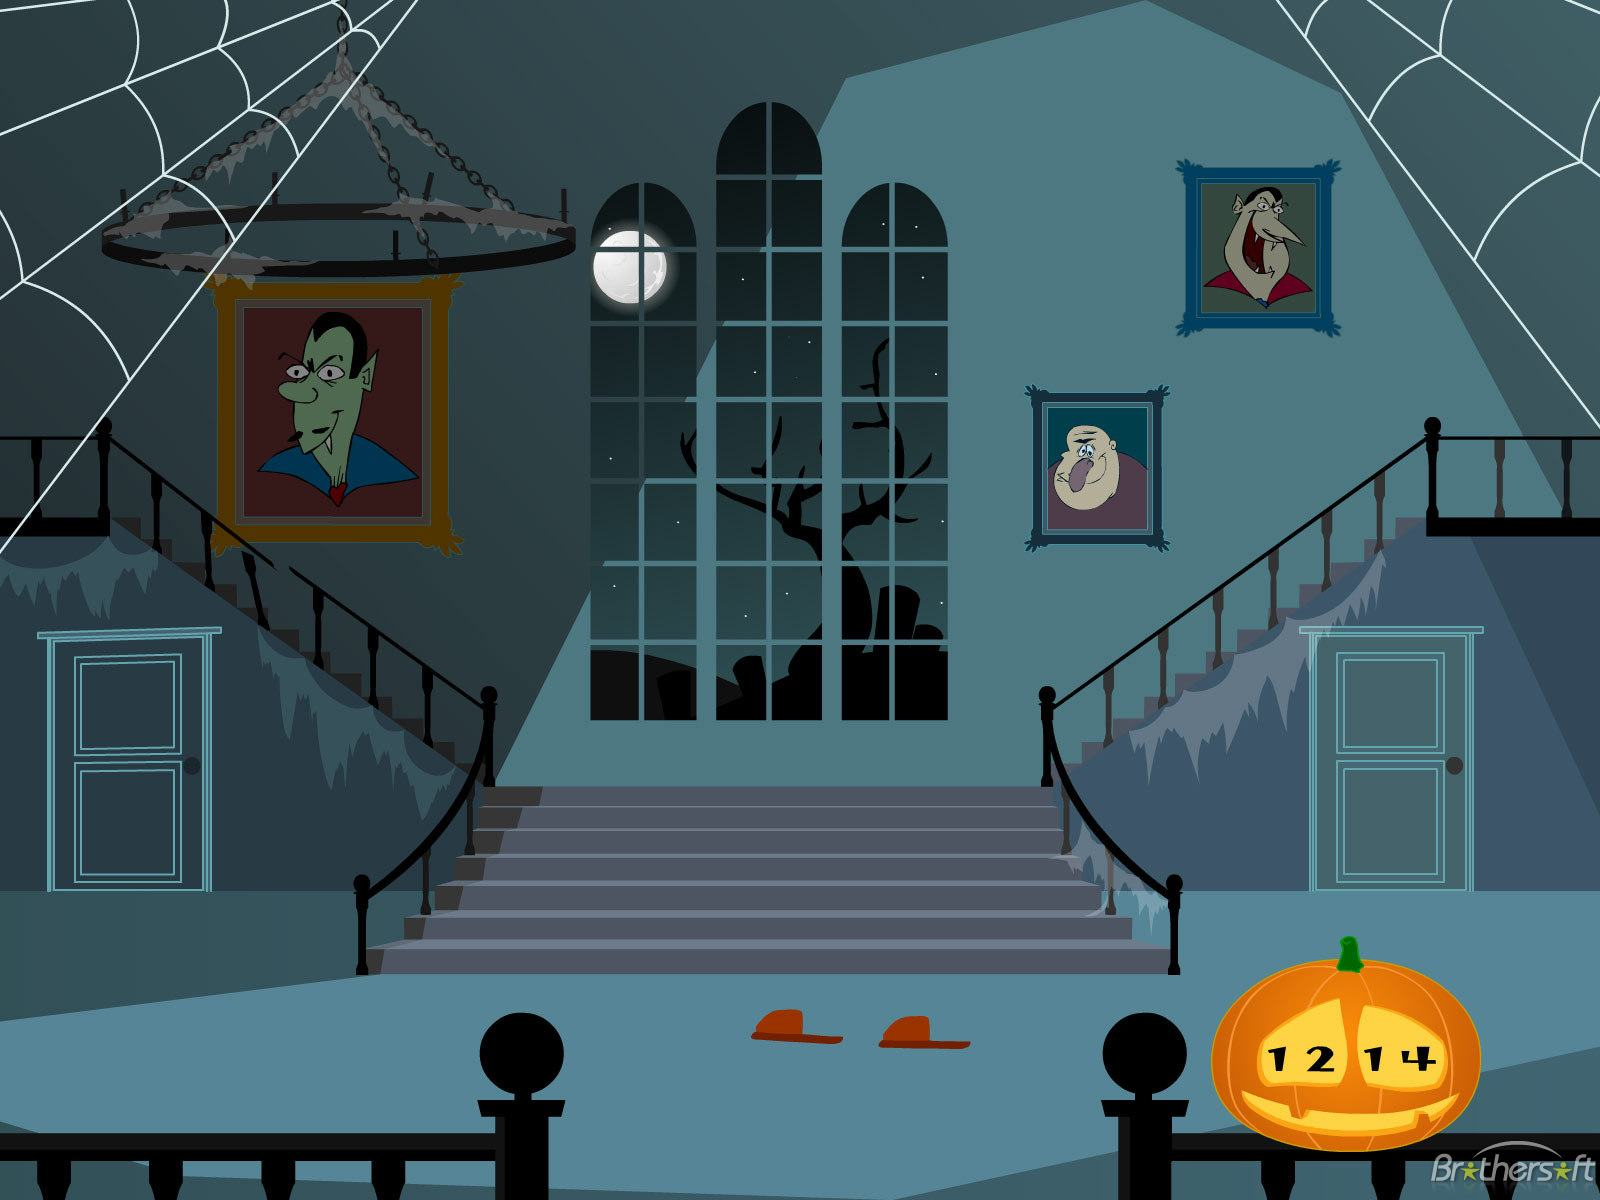 Drawn haunted house animated House a Animated haunted of